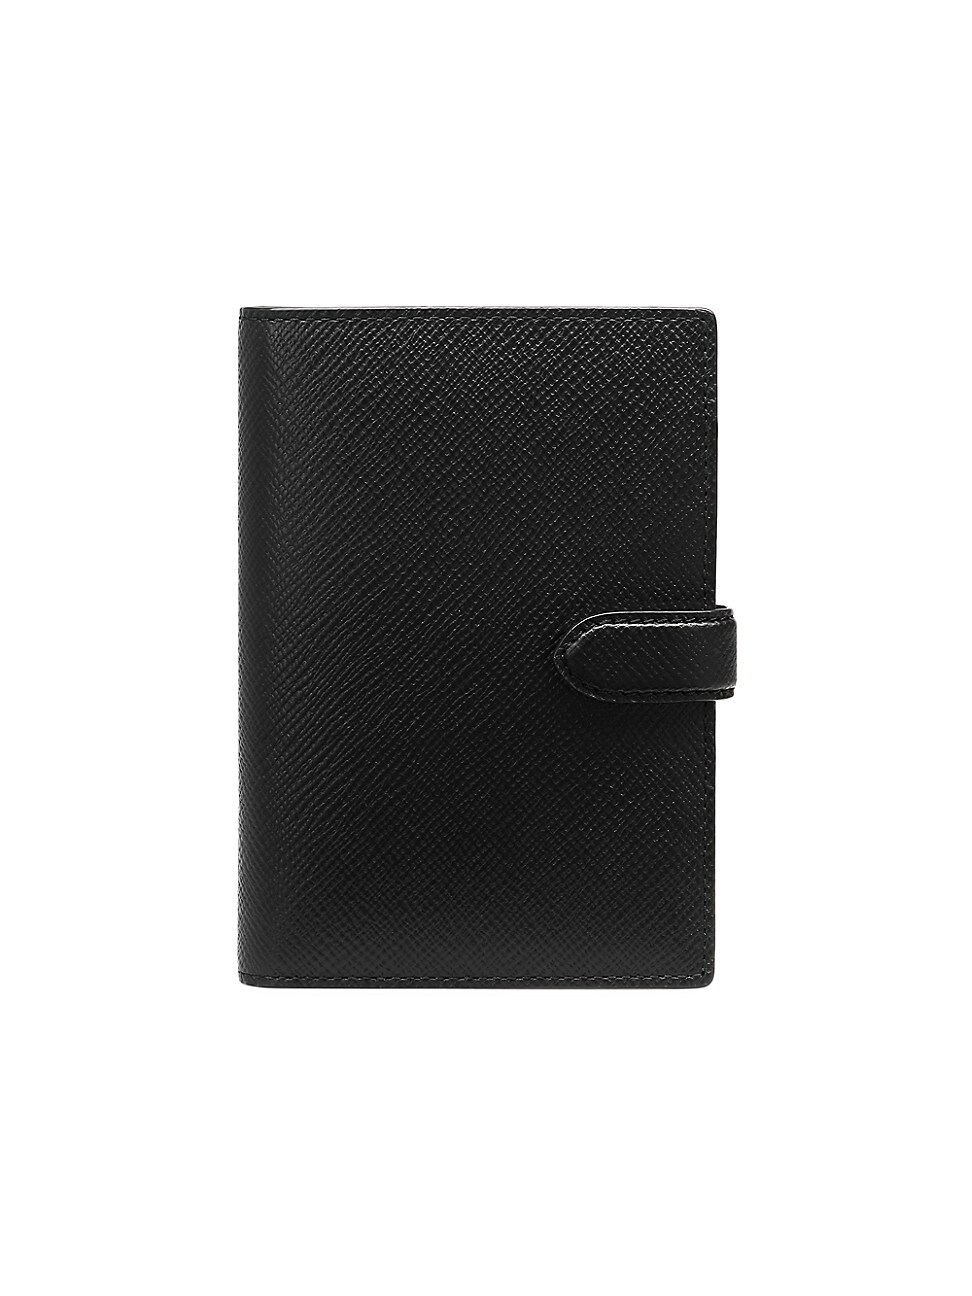 Smythson Panama Leather Passport Cover In Black